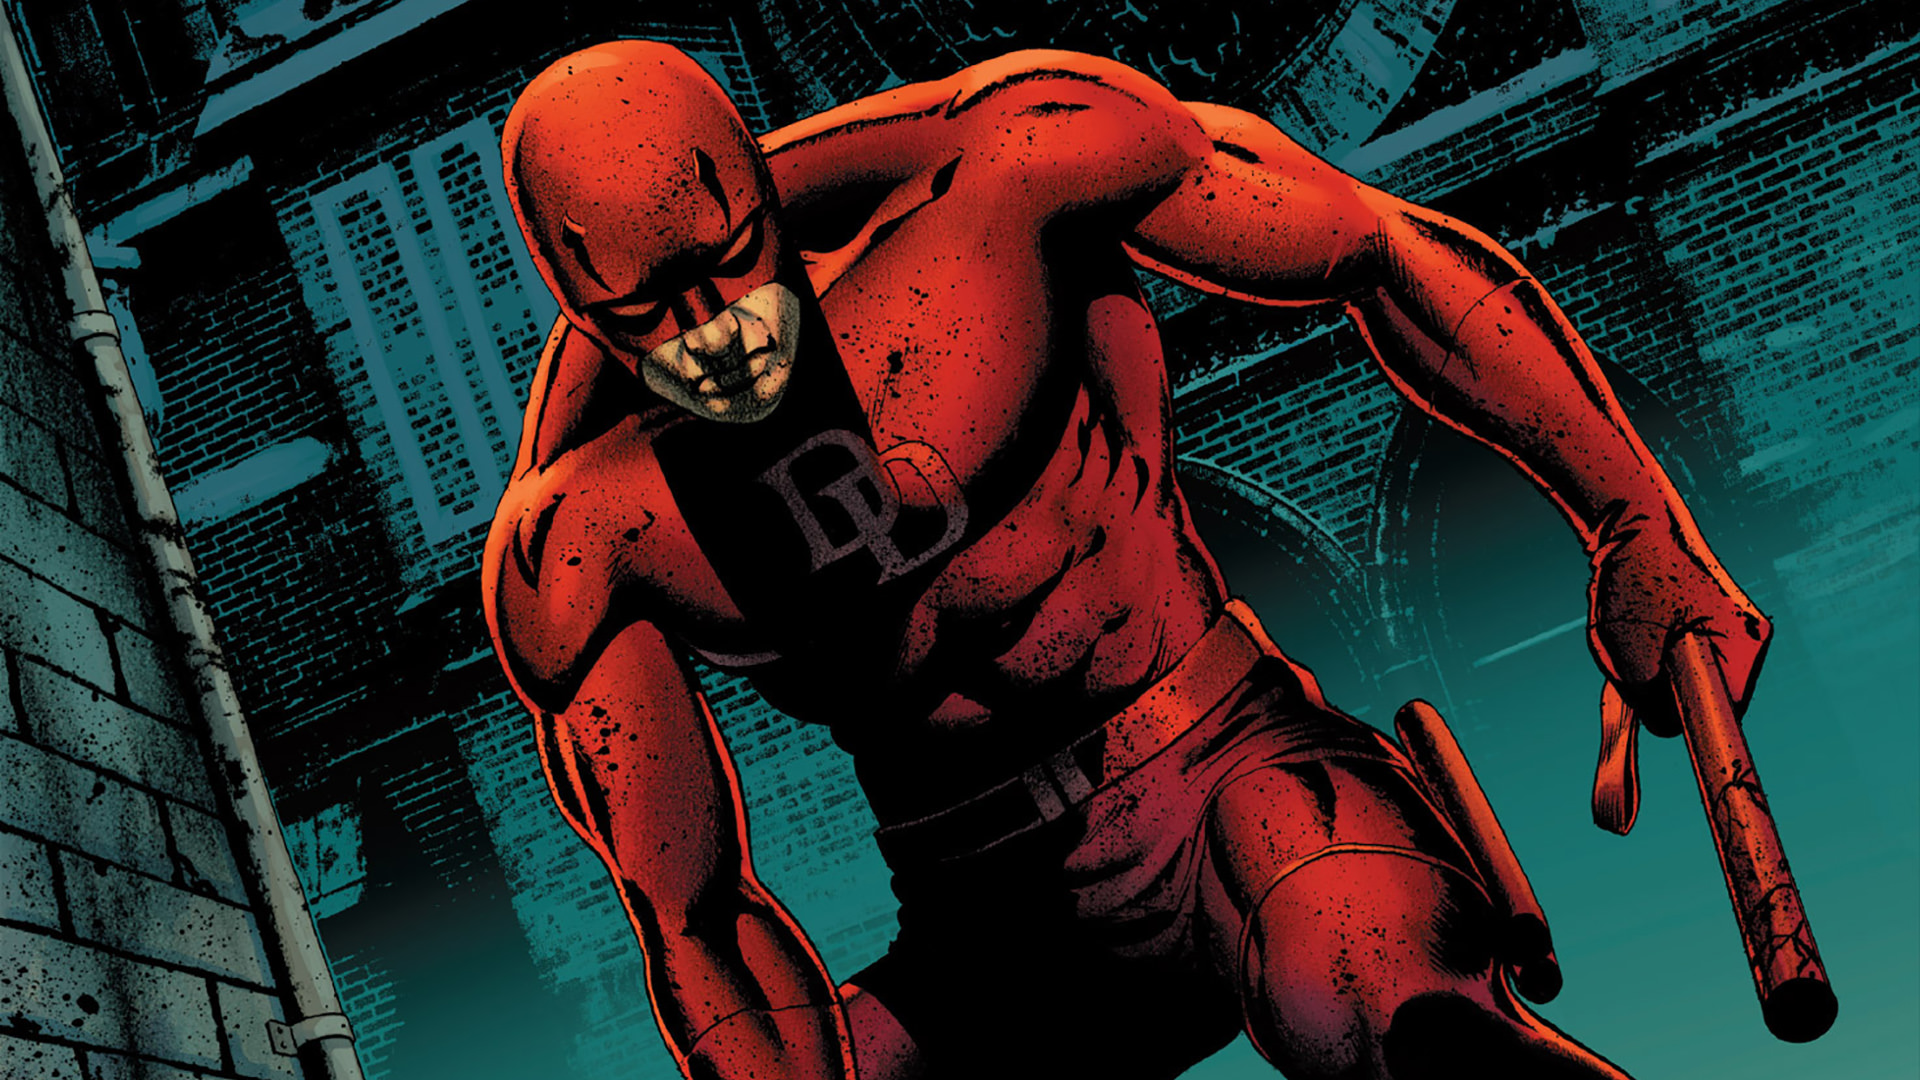 Daredevil Hd Wallpaper Background Image 1920x1080 Id 885384 Wallpaper Abyss